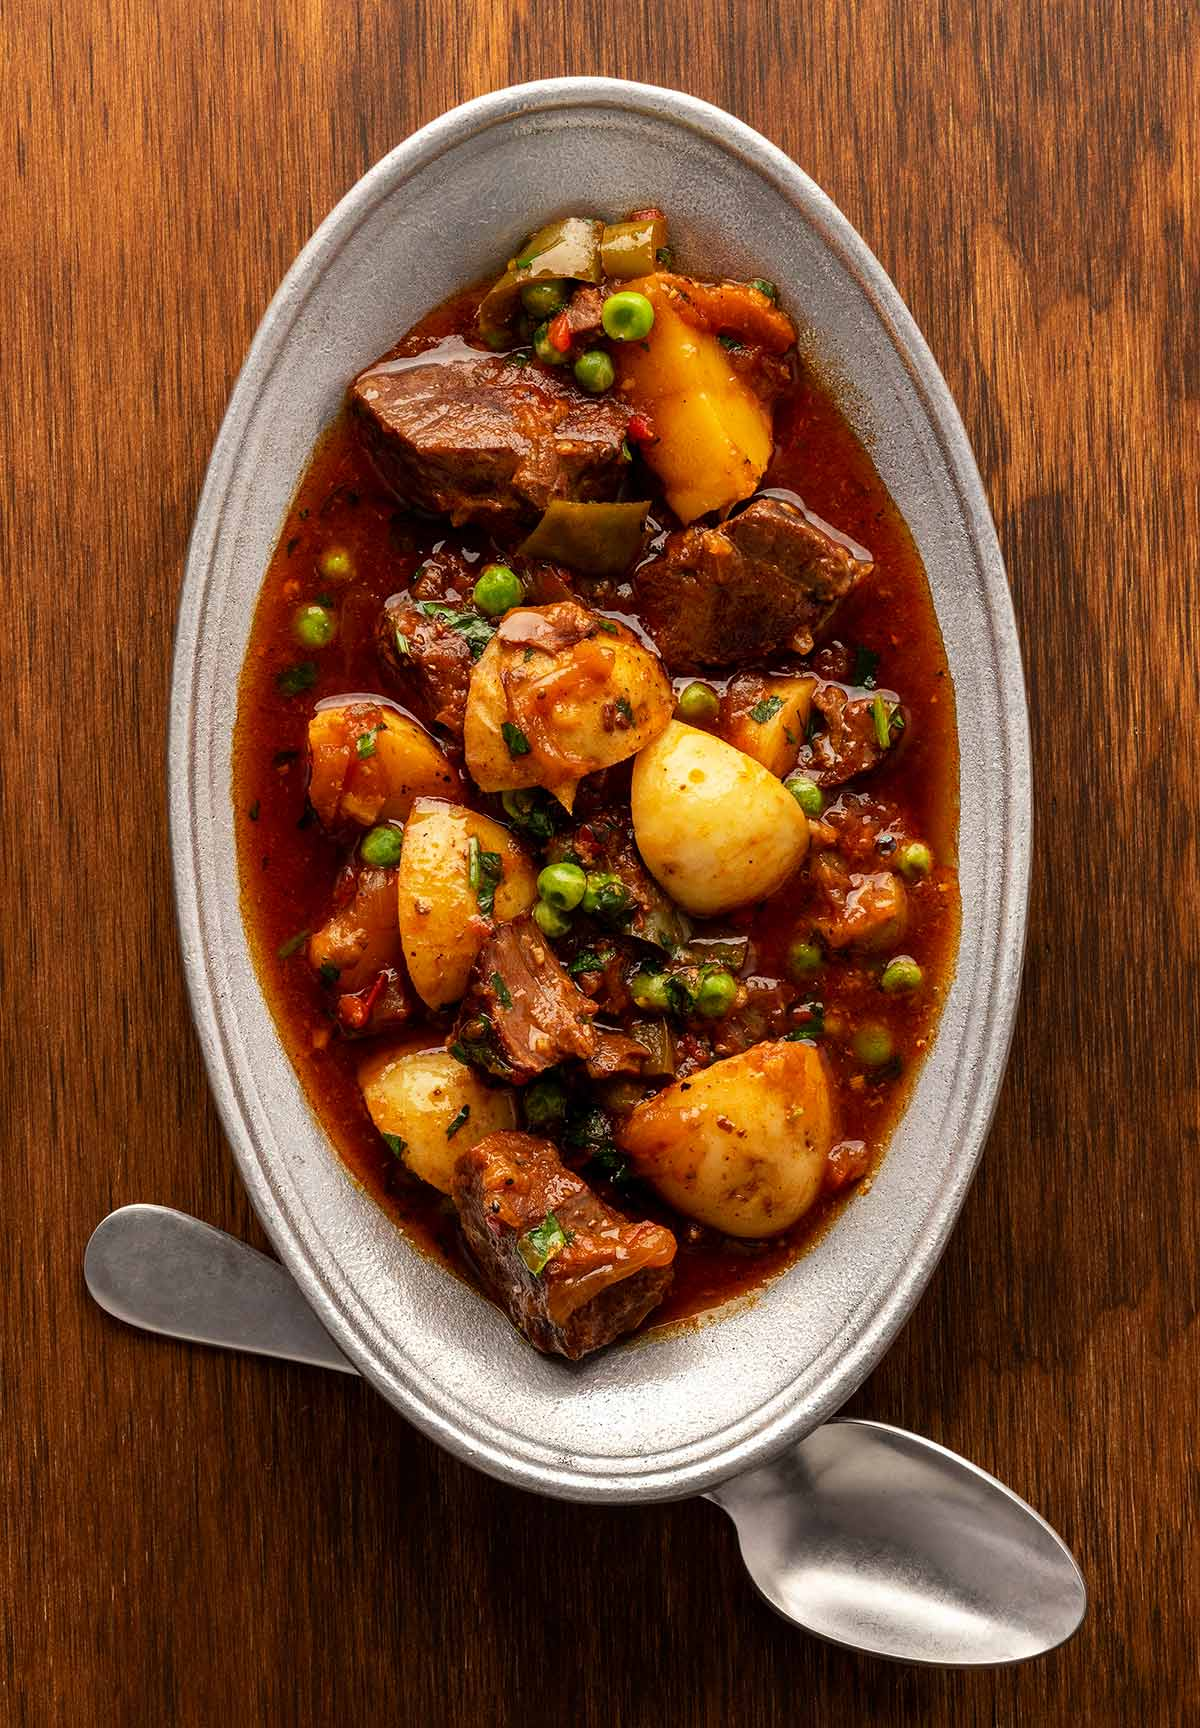 A North African venison stew in a serving bowl